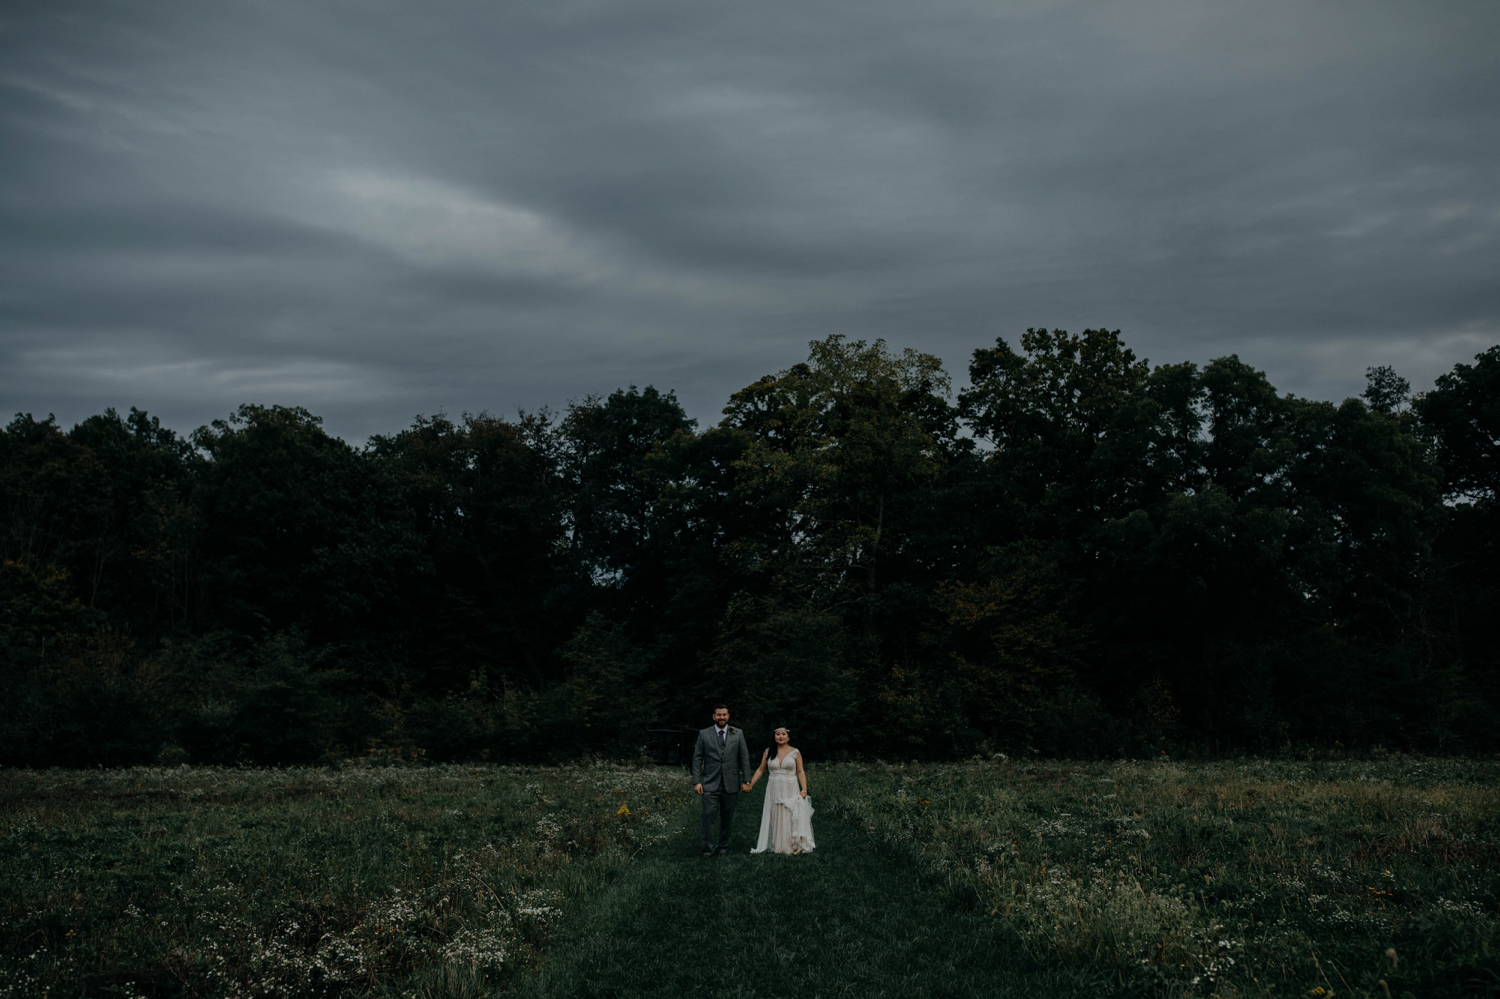 Columbus Ohio Intimate wedding photographer grace e jones canyon run ranch wedding61_1500.jpg